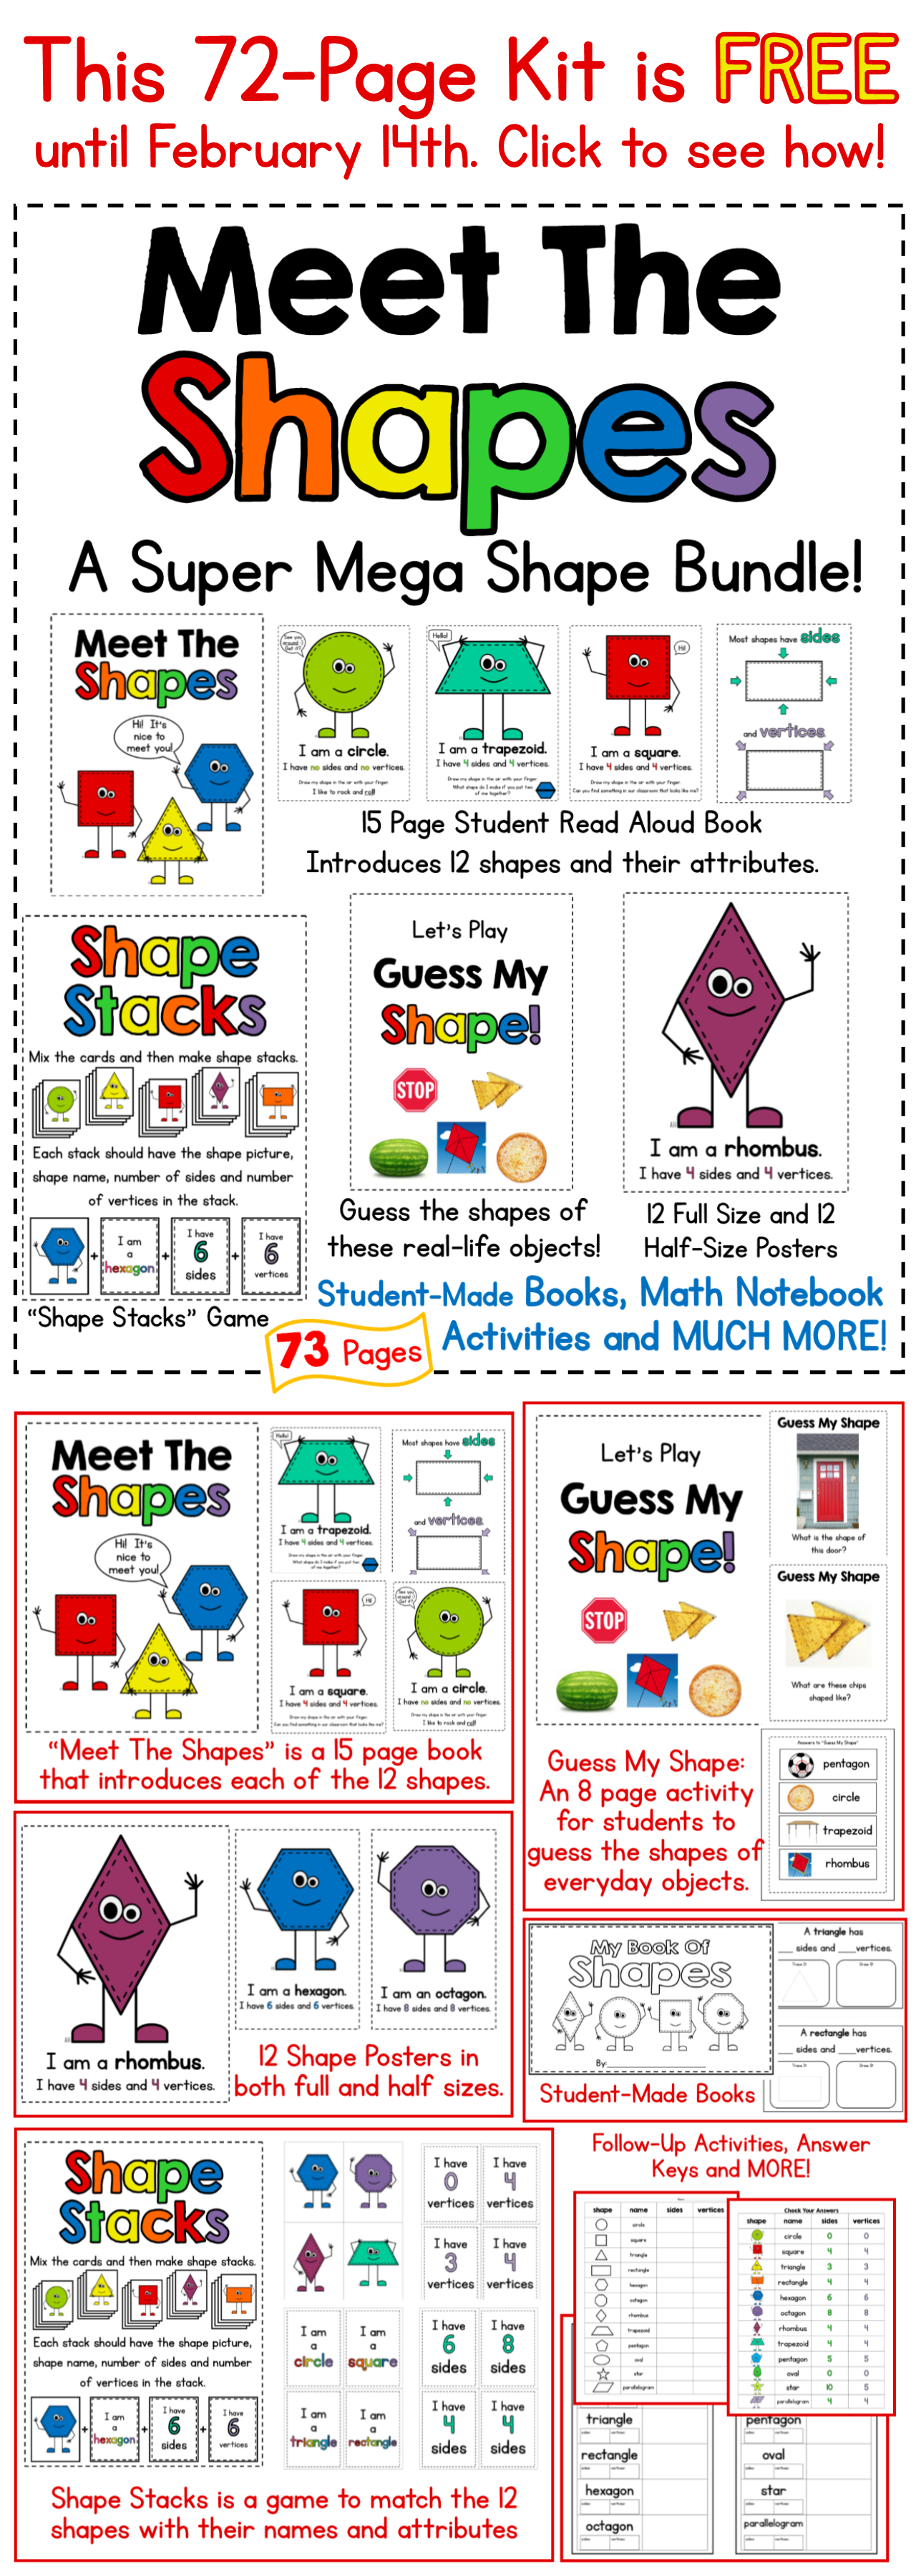 Get This 72 Page Meet The Shapes Kit Free In February